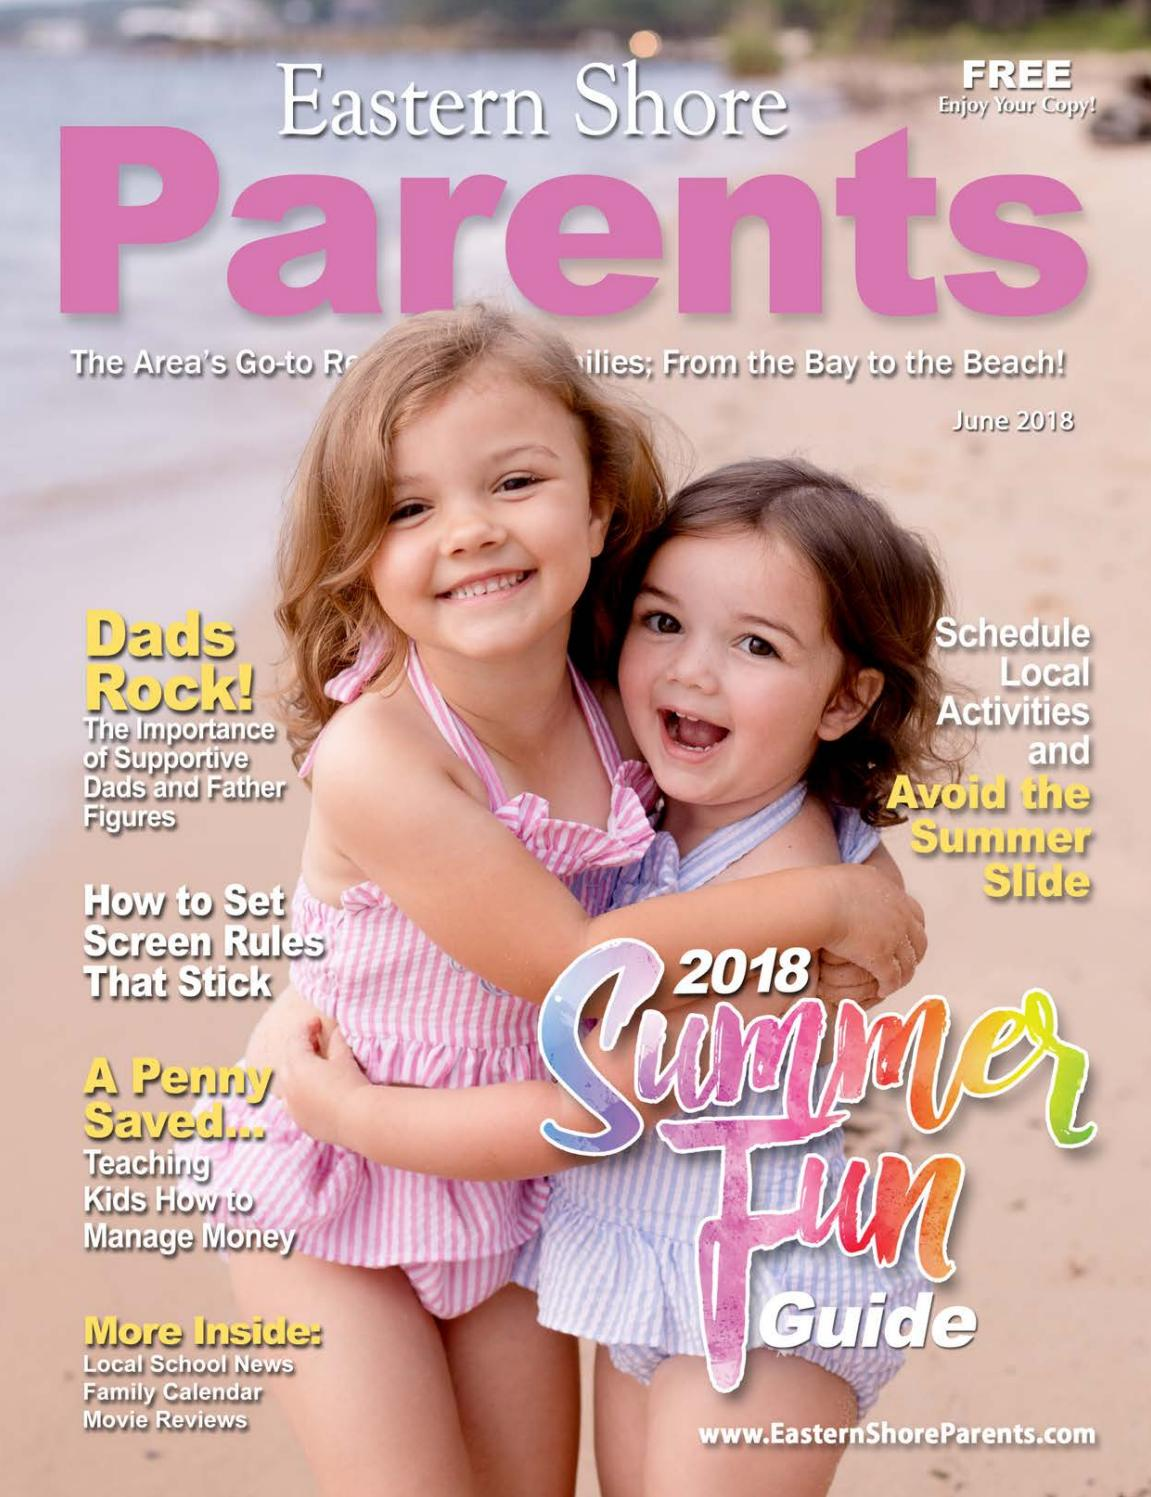 Eastern Shore Parents Magazine June 2018 by KeepSharing - issuu